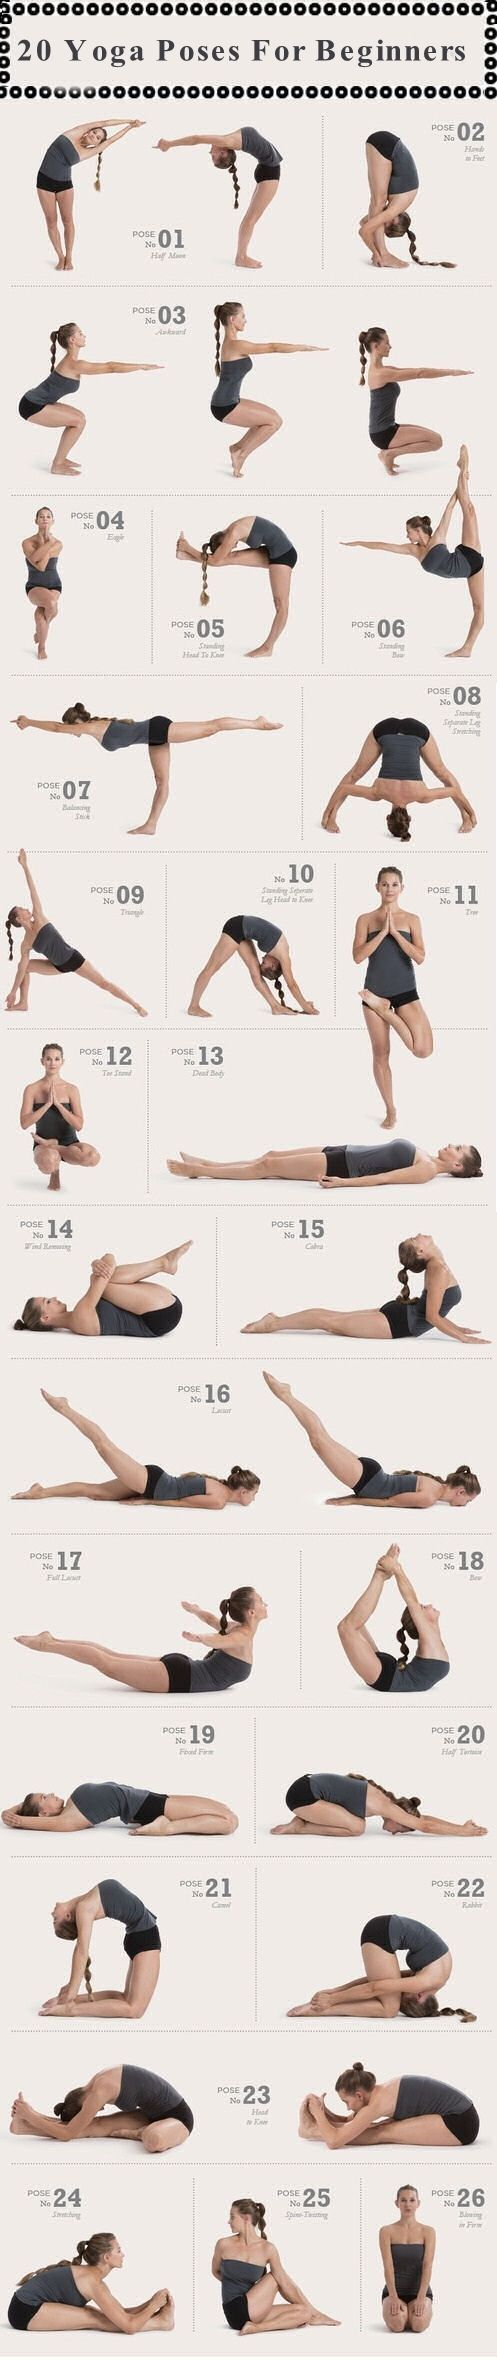 This is totally bikram. And I would NOT call this beginners. Hell I can barely do